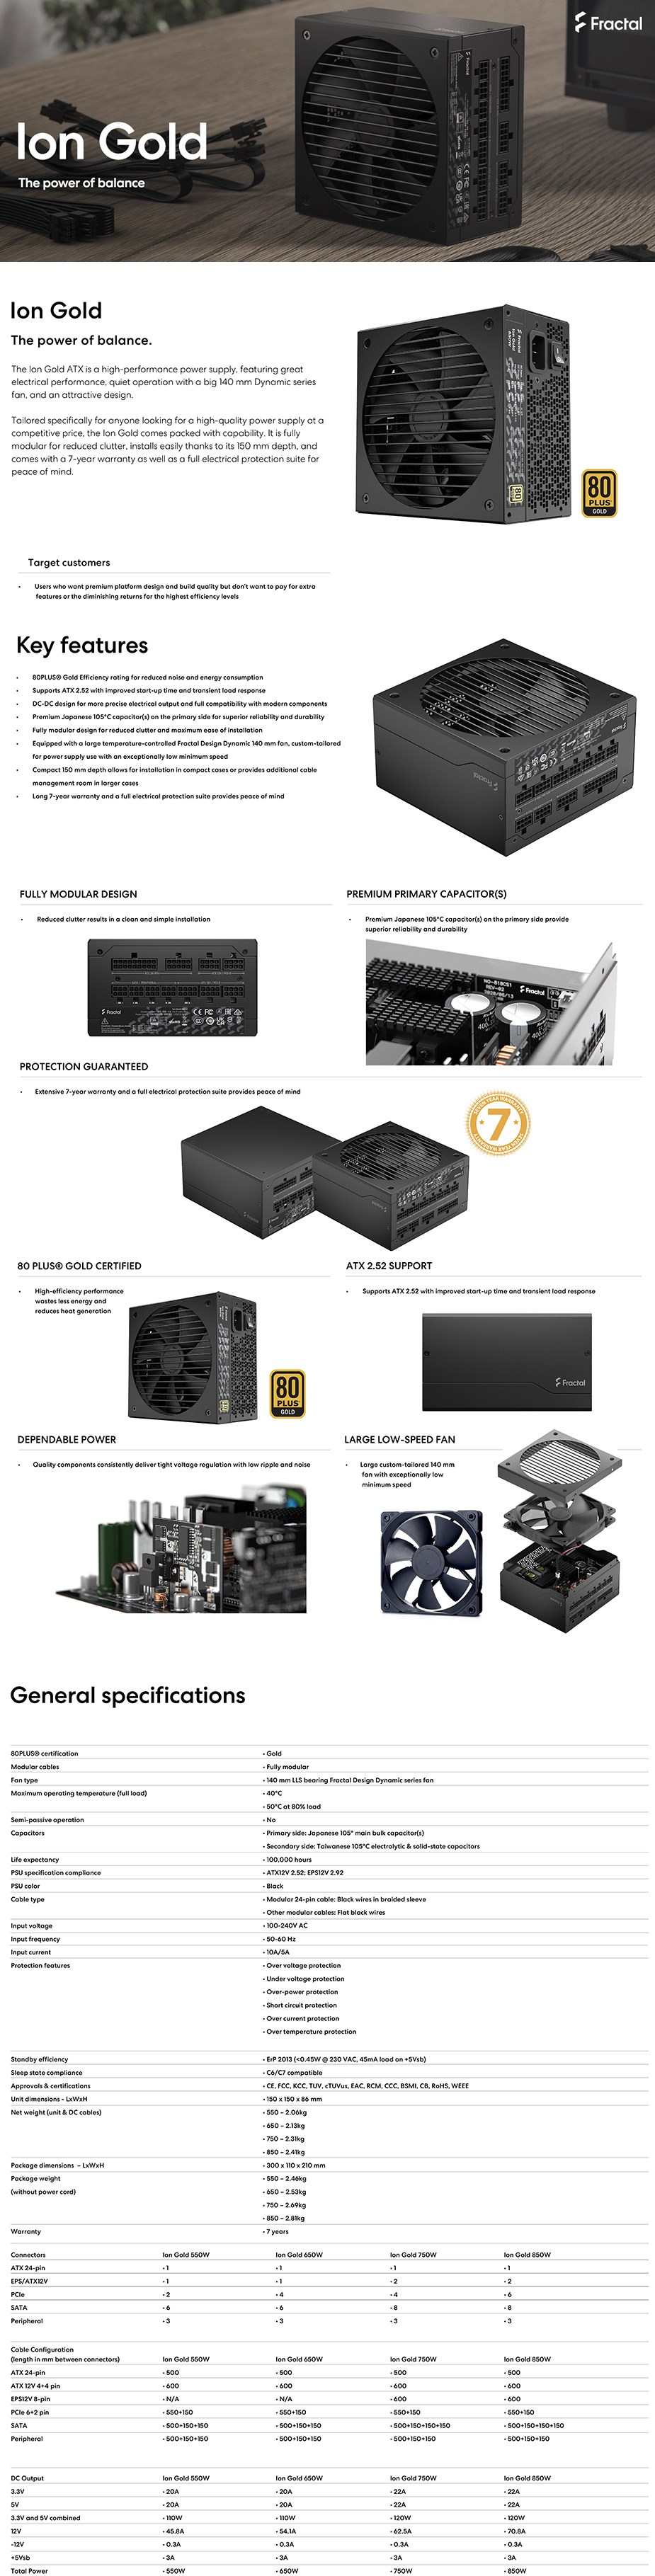 A large marketing image providing additional information about the product Fractal Design Ion Gold 650W Fully Modular 80PLUS Gold Power Supply - Additional alt info not provided